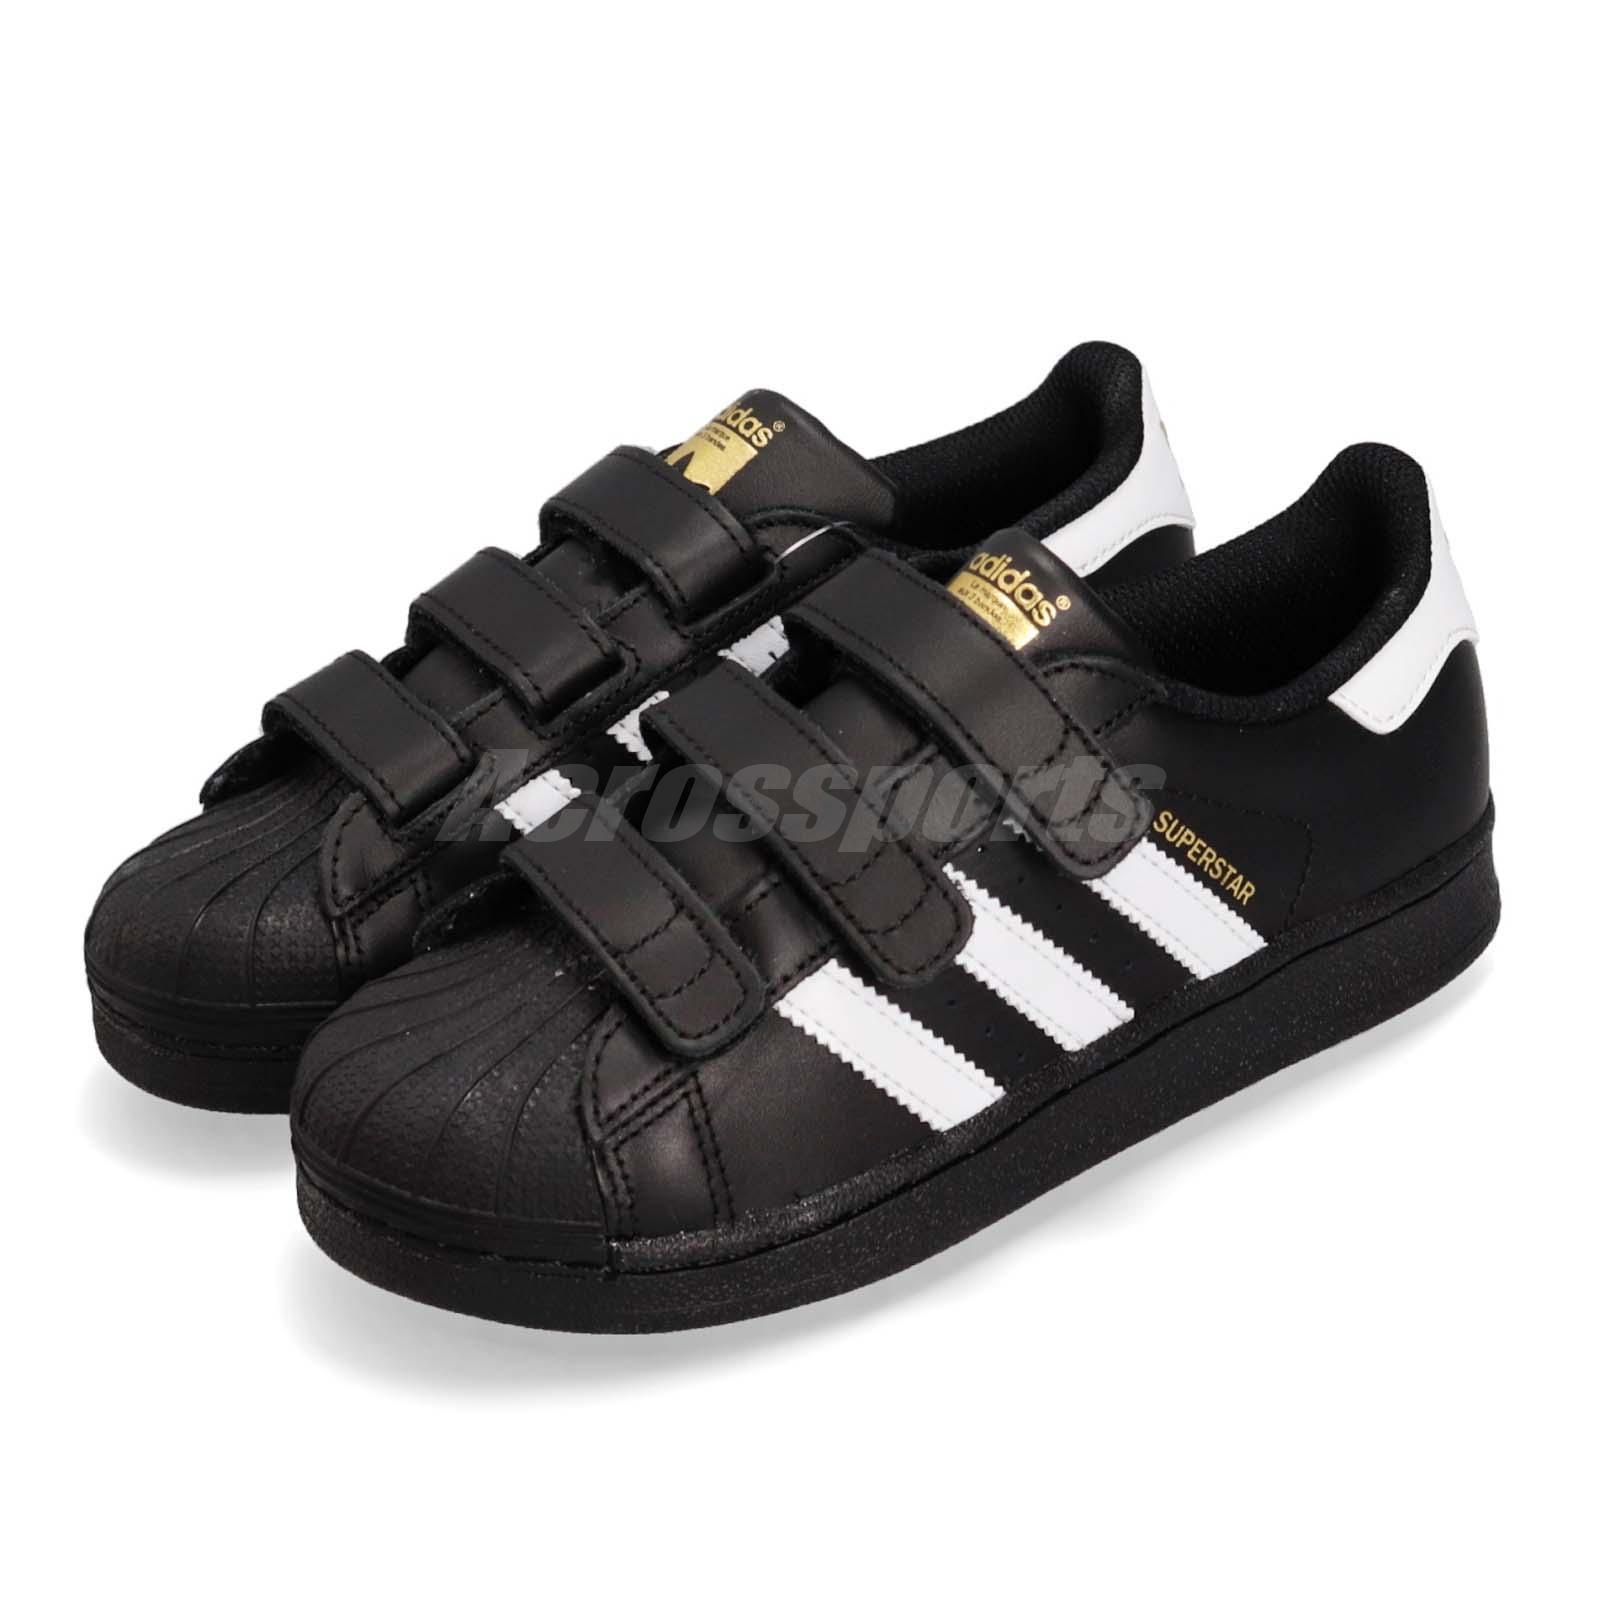 ADIDAS SuperStar Black White Gold Toddlers 4 To 10 New N Box 100/% Original